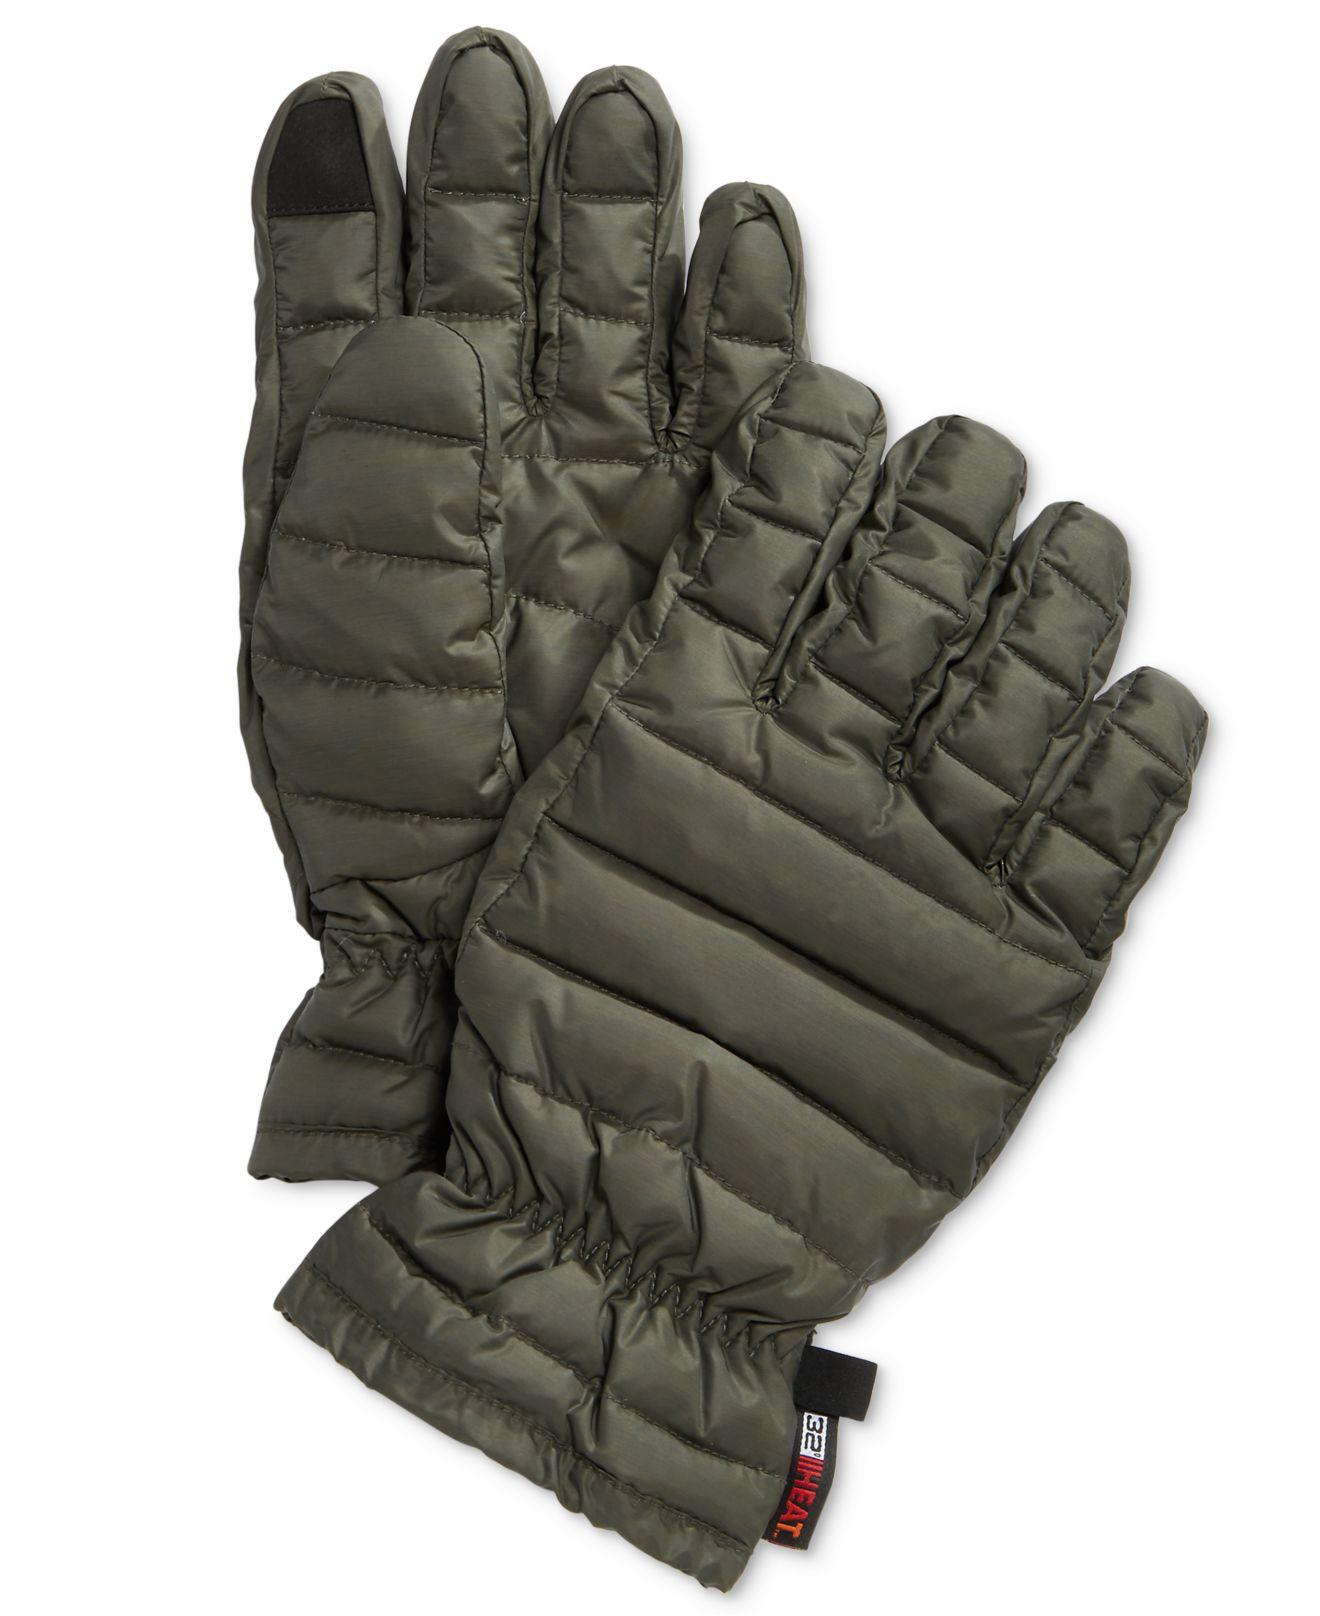 Mens down gloves - Featured 32 Degrees Green Men S Down Gloves